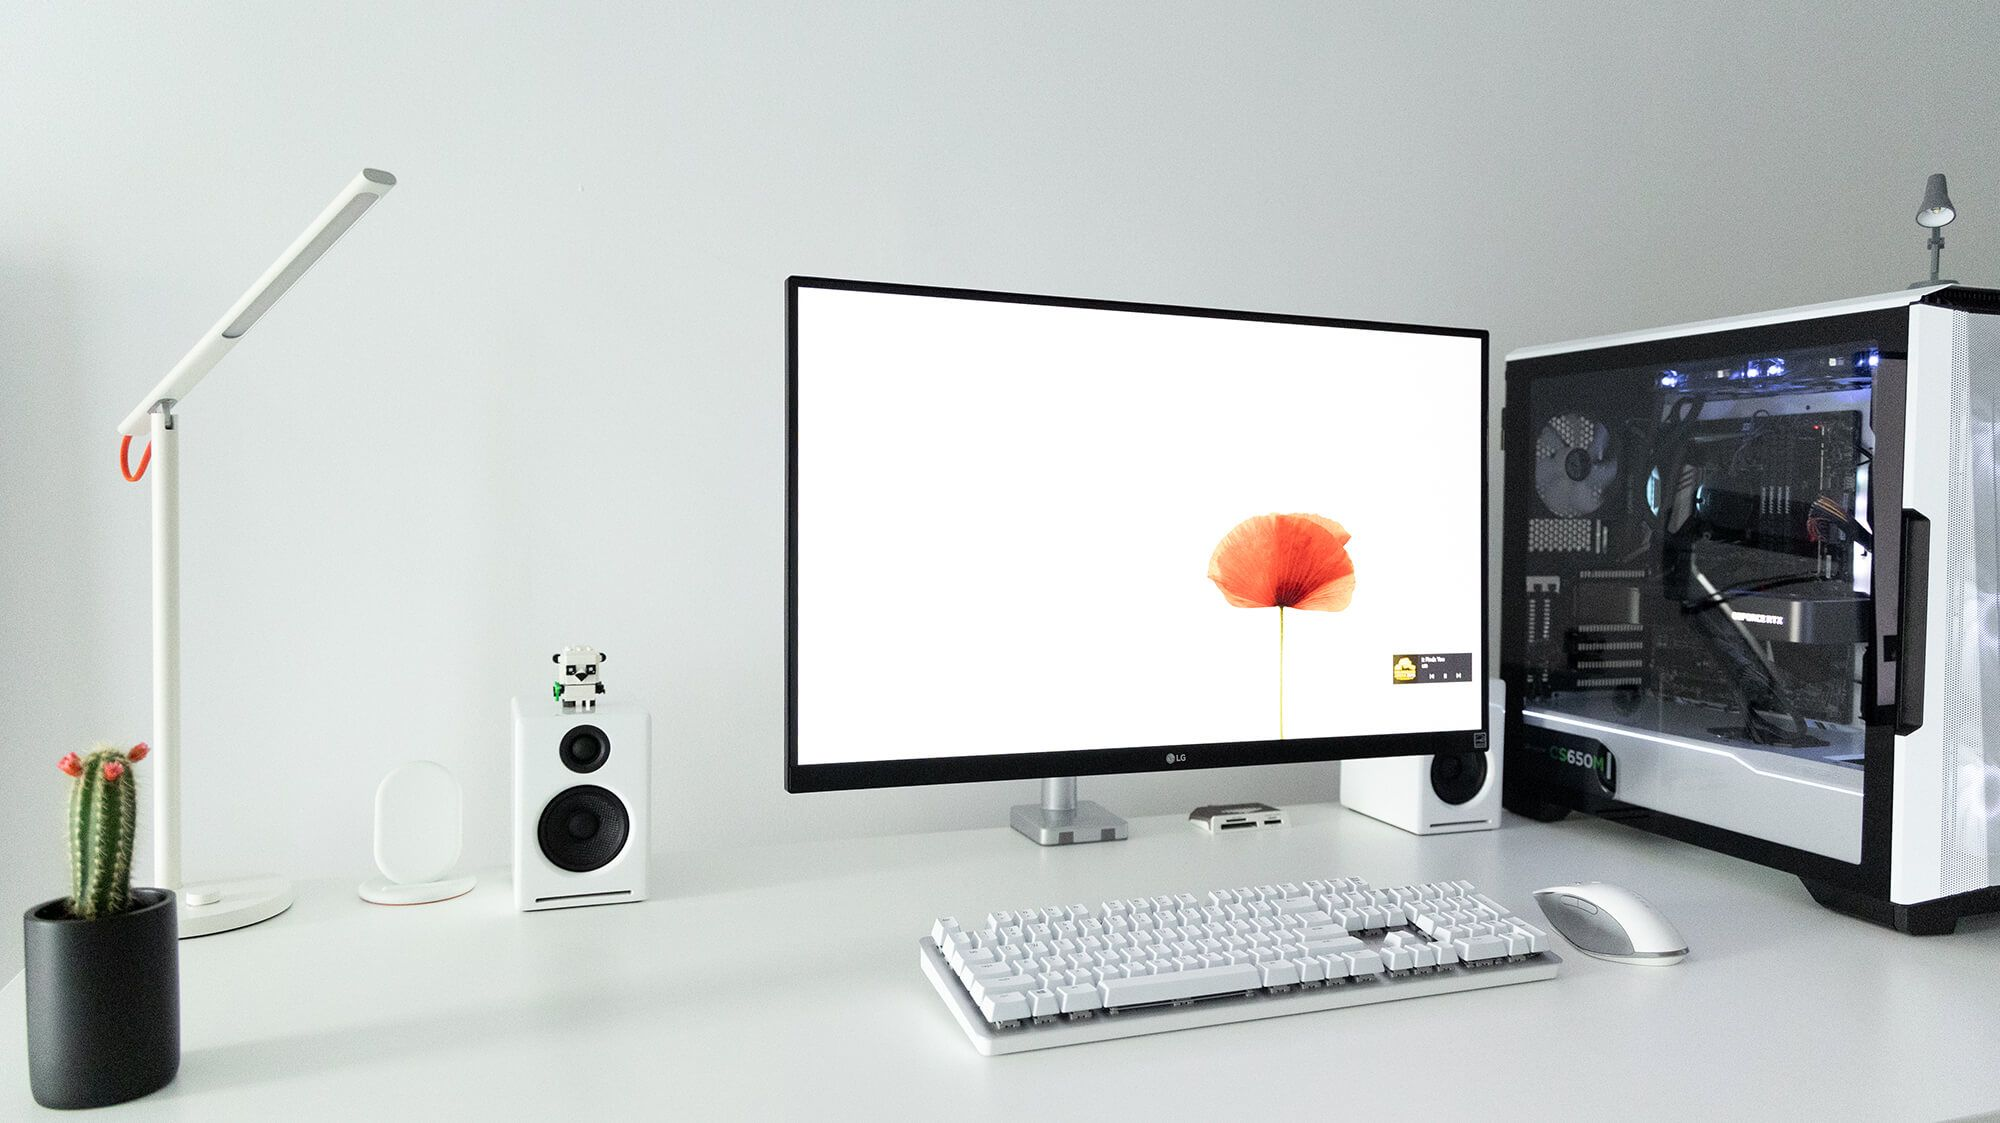 The first white item Bogdan purchased was Phanteks Eclipse P500A mid-tower case. He enjoyed it so much that he decided to create a fully white setup